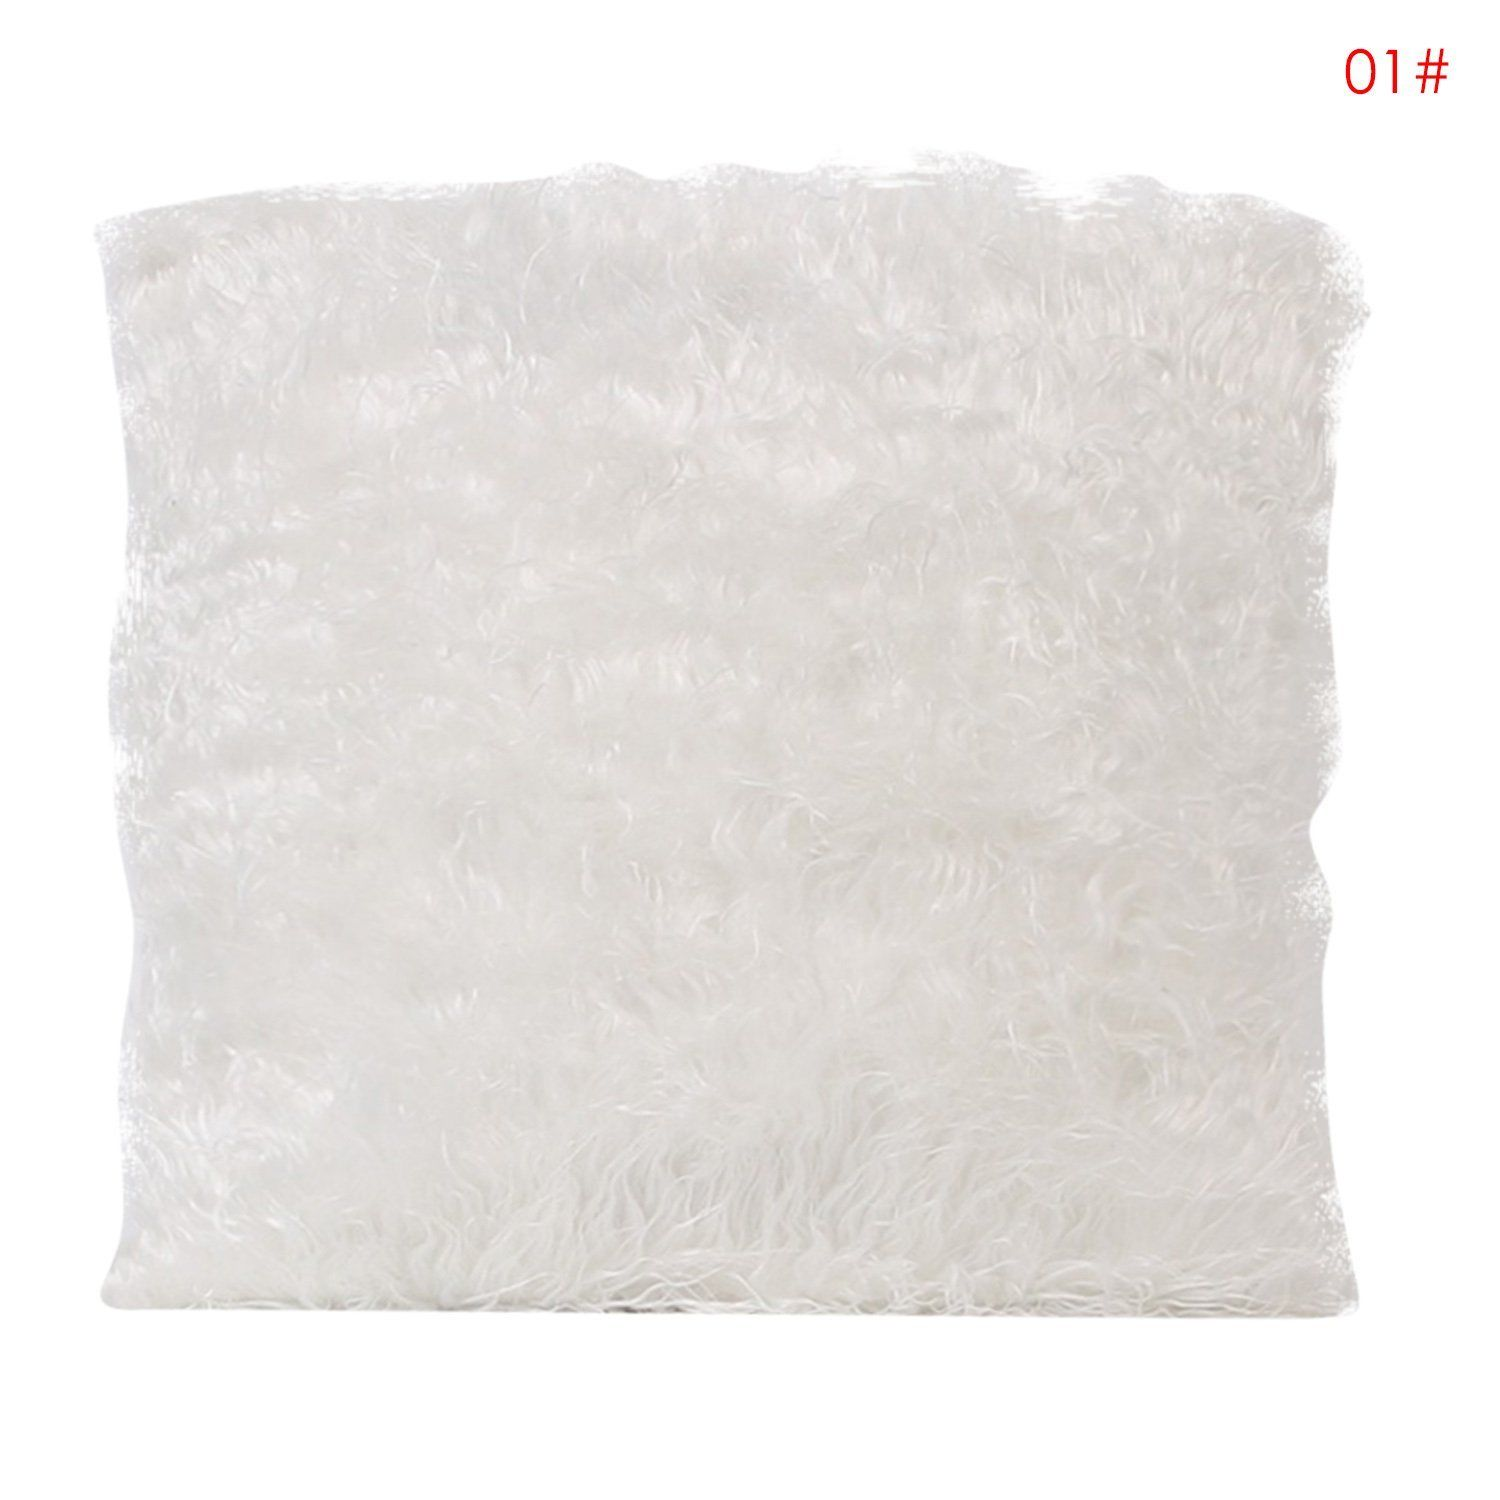 Square Throw Pillow Cases : 18 Faux Fur Throw Pillow Cases Bedroom Decor Cushion Cover Square Pillow New eBay